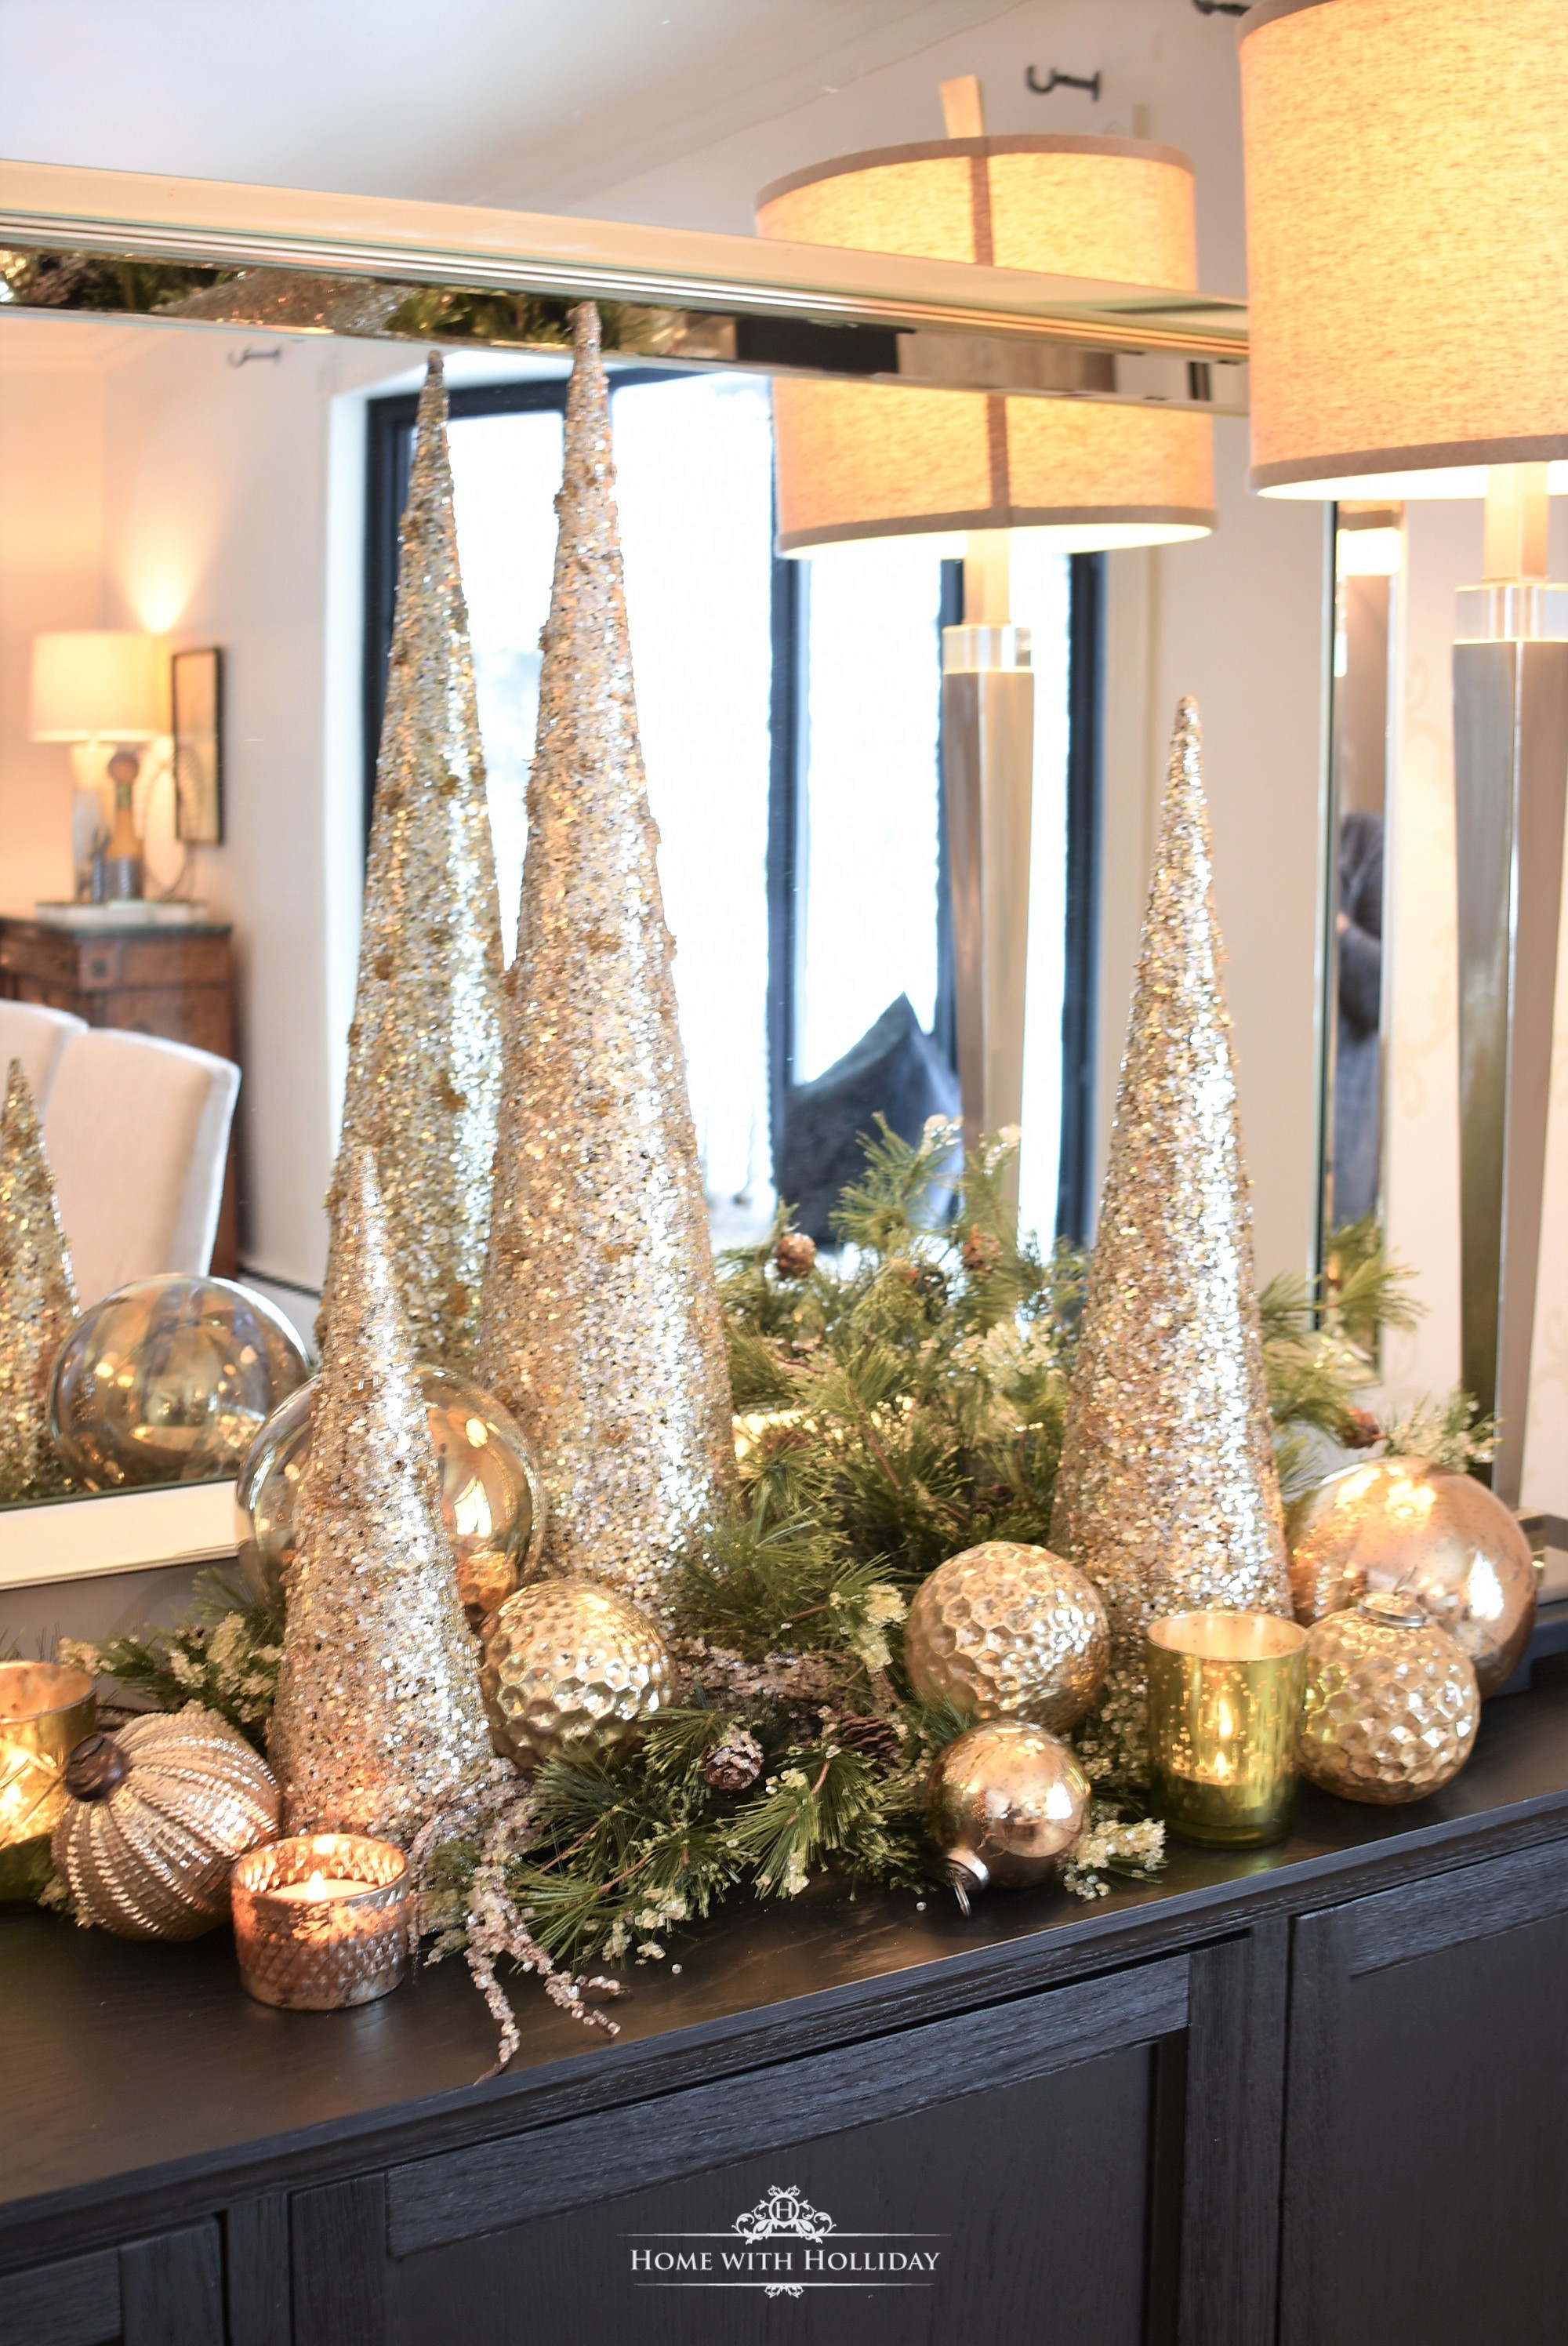 Silver and Gold Glam Christmas Centerpiece with greenery, gold cone trees and ornaments